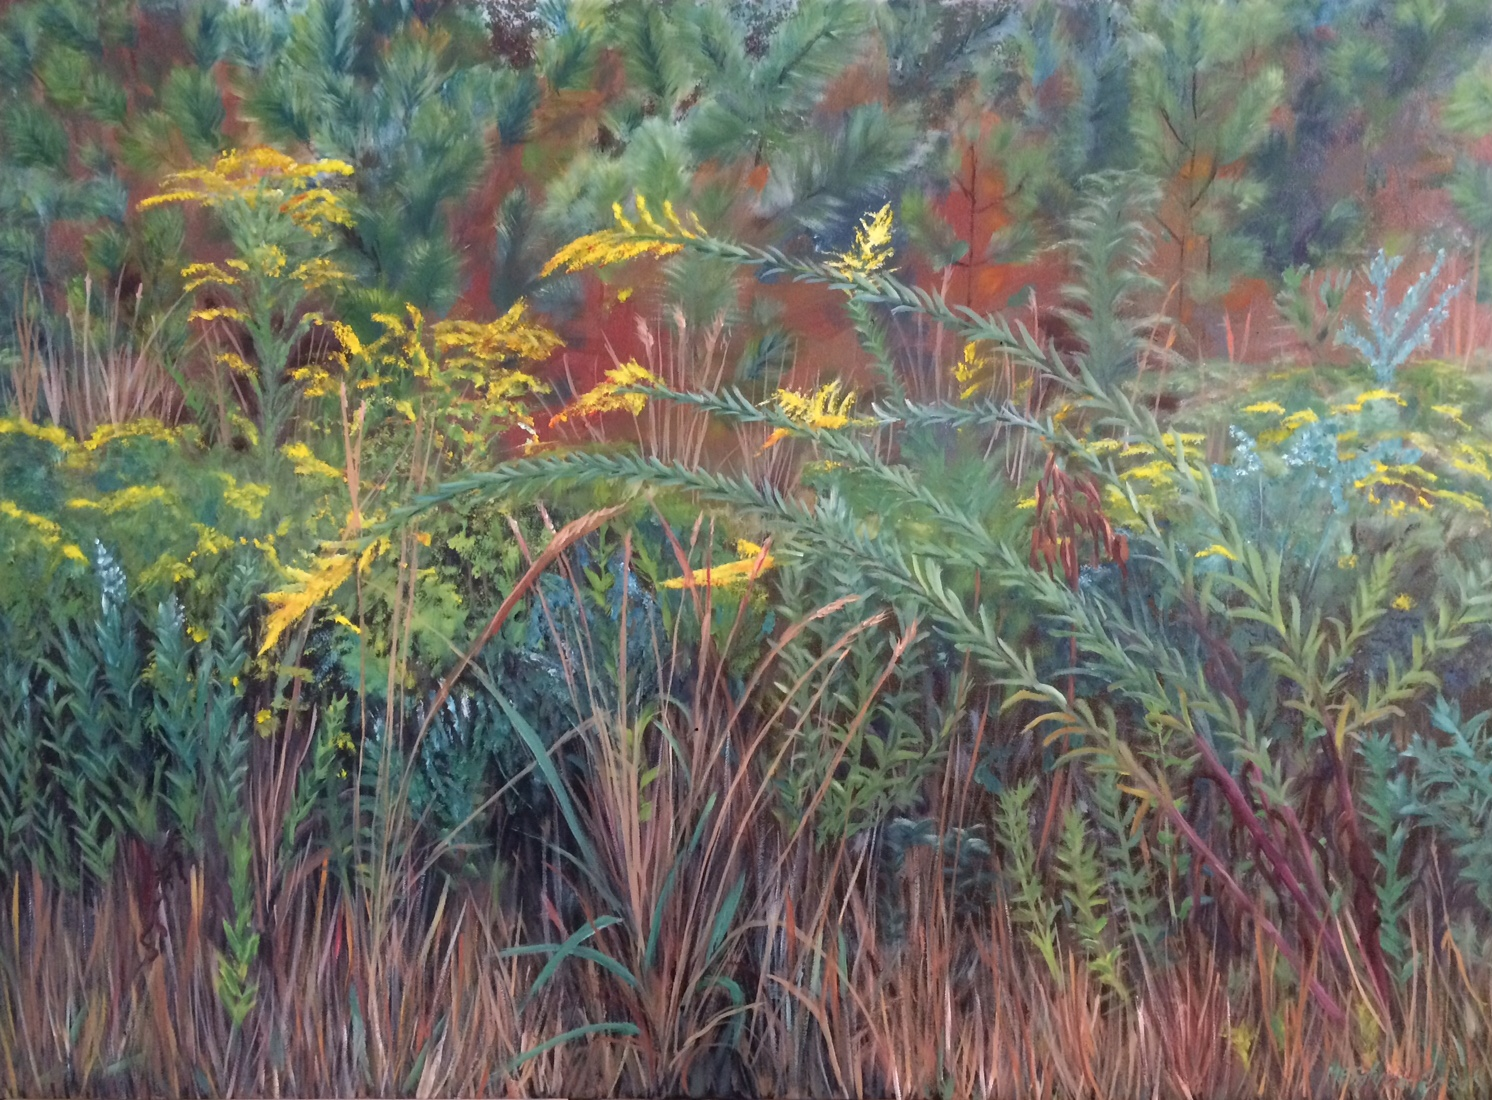 Autumn Scape  oil on canvass; 22 x 30 2016  400.00